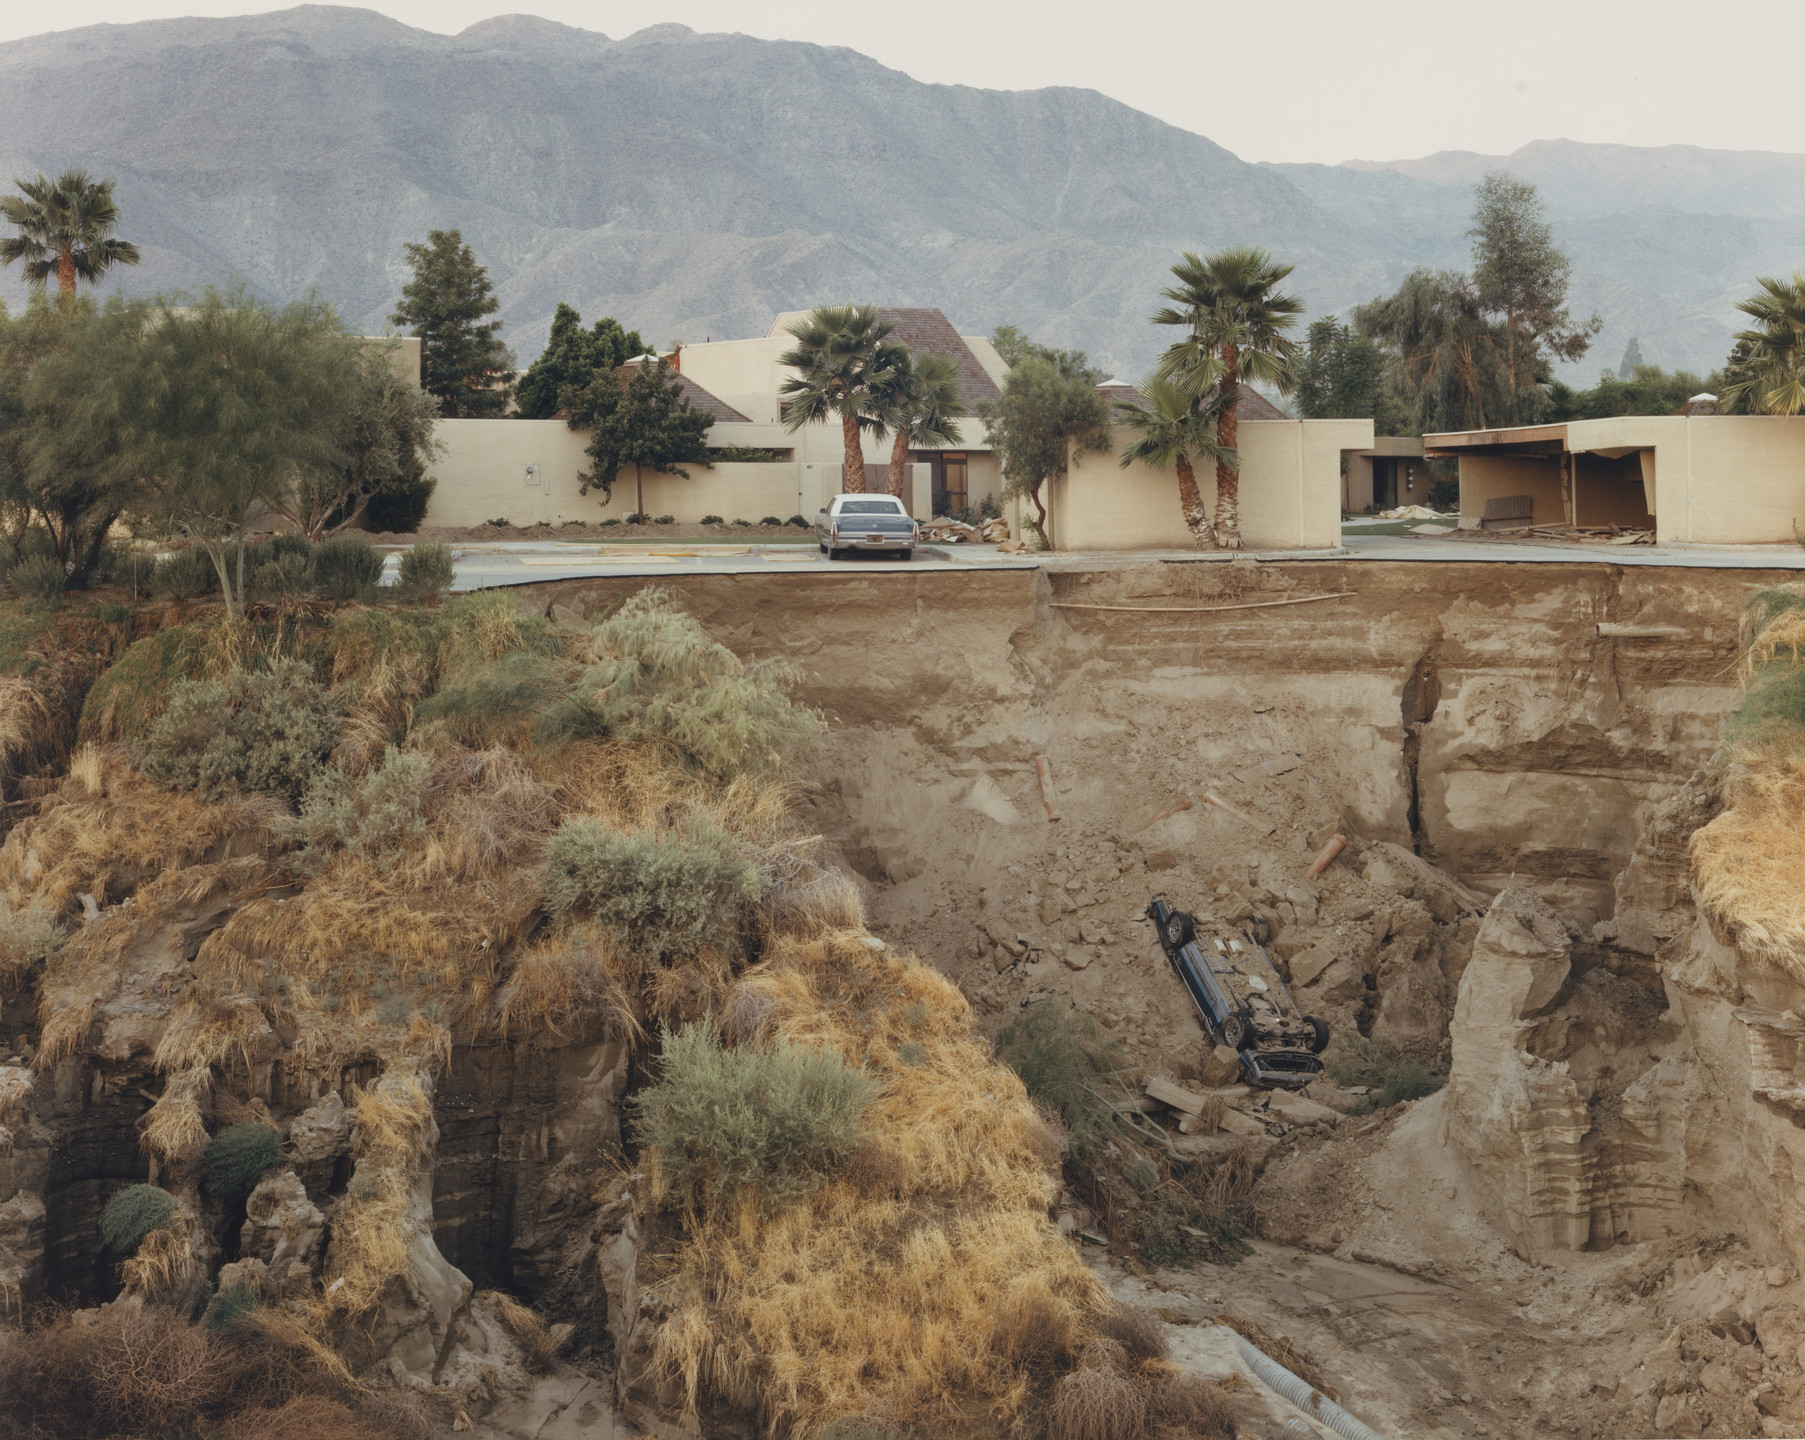 Joel Sternfeld. After a Flash Flood, Rancho Mirage, California. July 1979